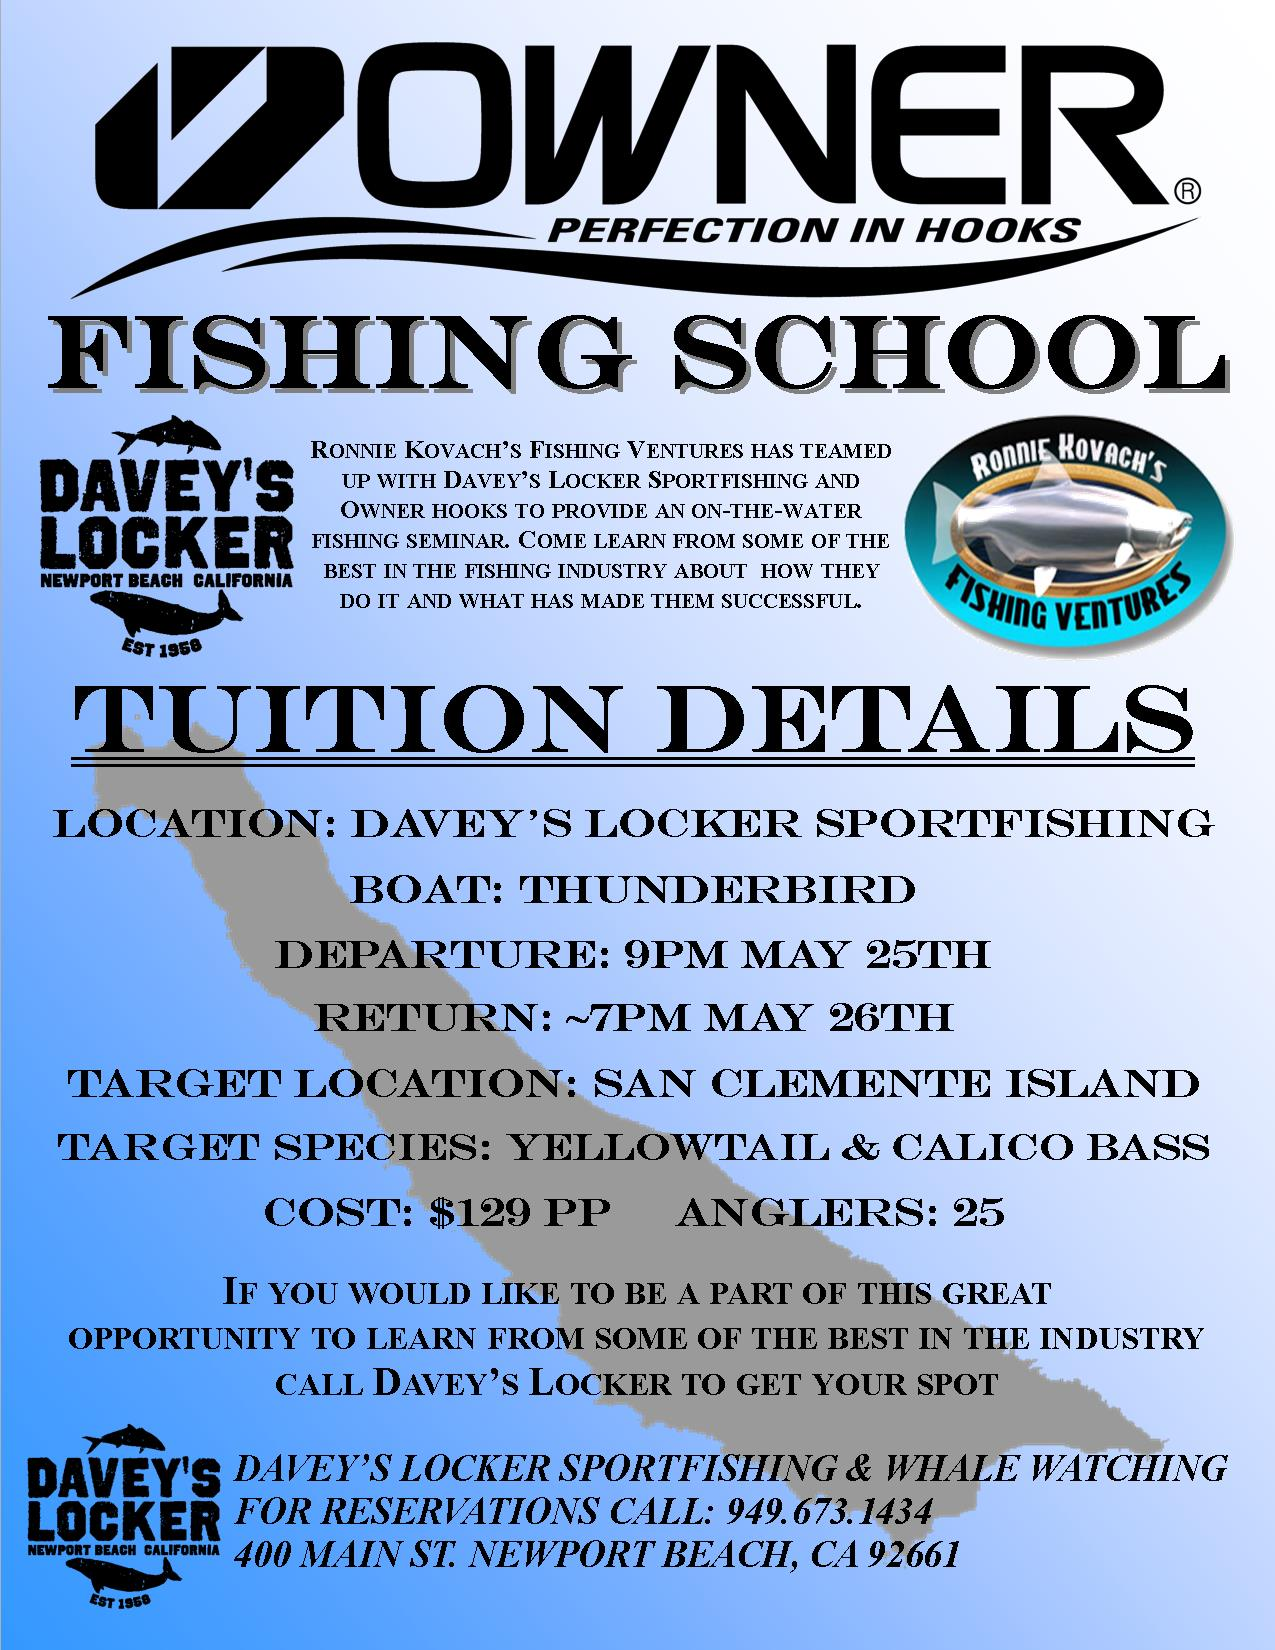 Ronnie Kovach Owner Fishing School 2